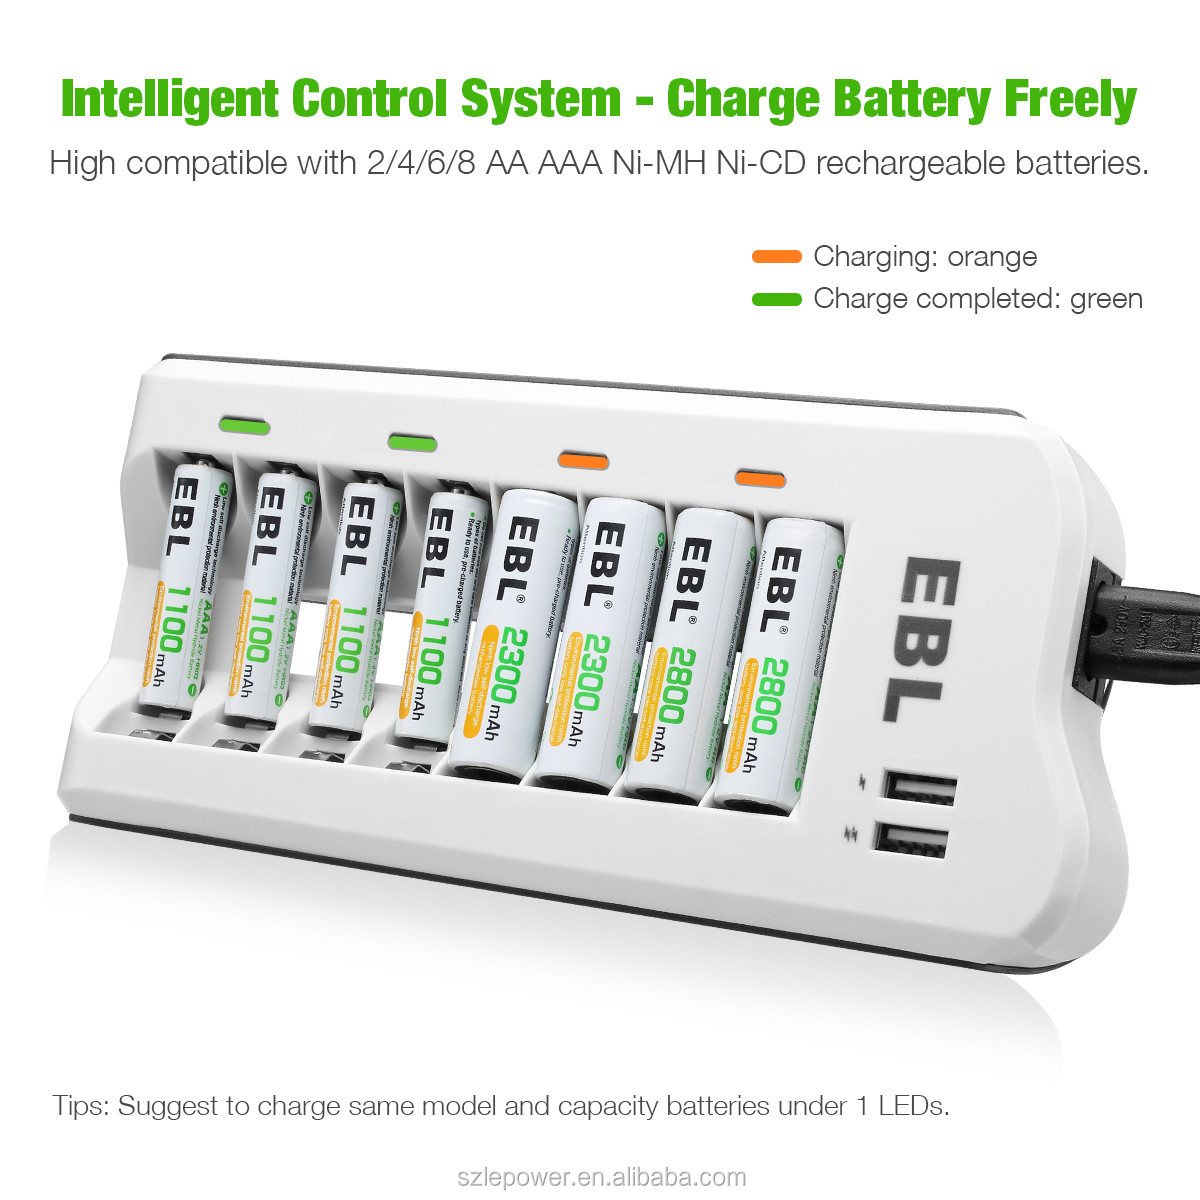 8 Bay Rechargeable Battery Charger with Dual USB Port for NI-MH NI-CD AA AAA Rechargeable Batteries